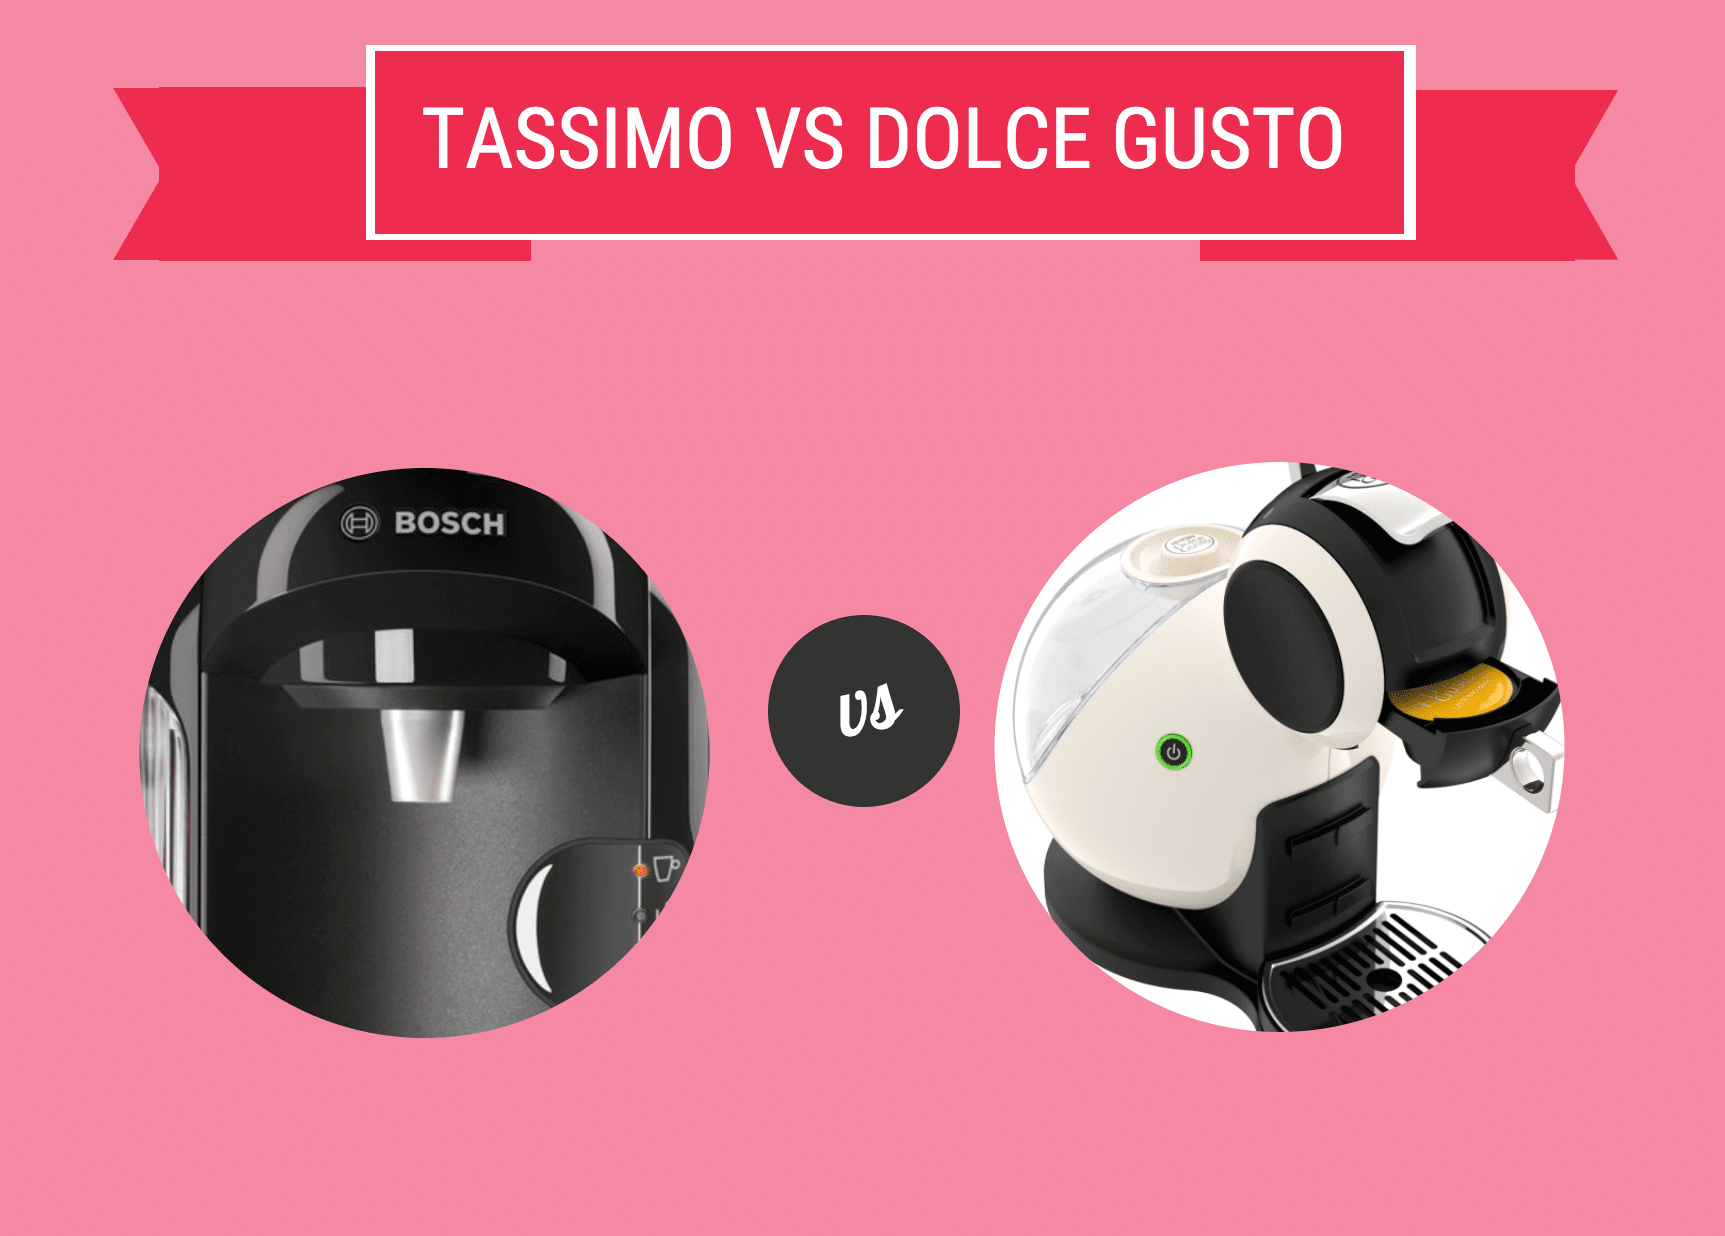 Tassimo vs Dolce Gusto: Battle of the Coffee Machines